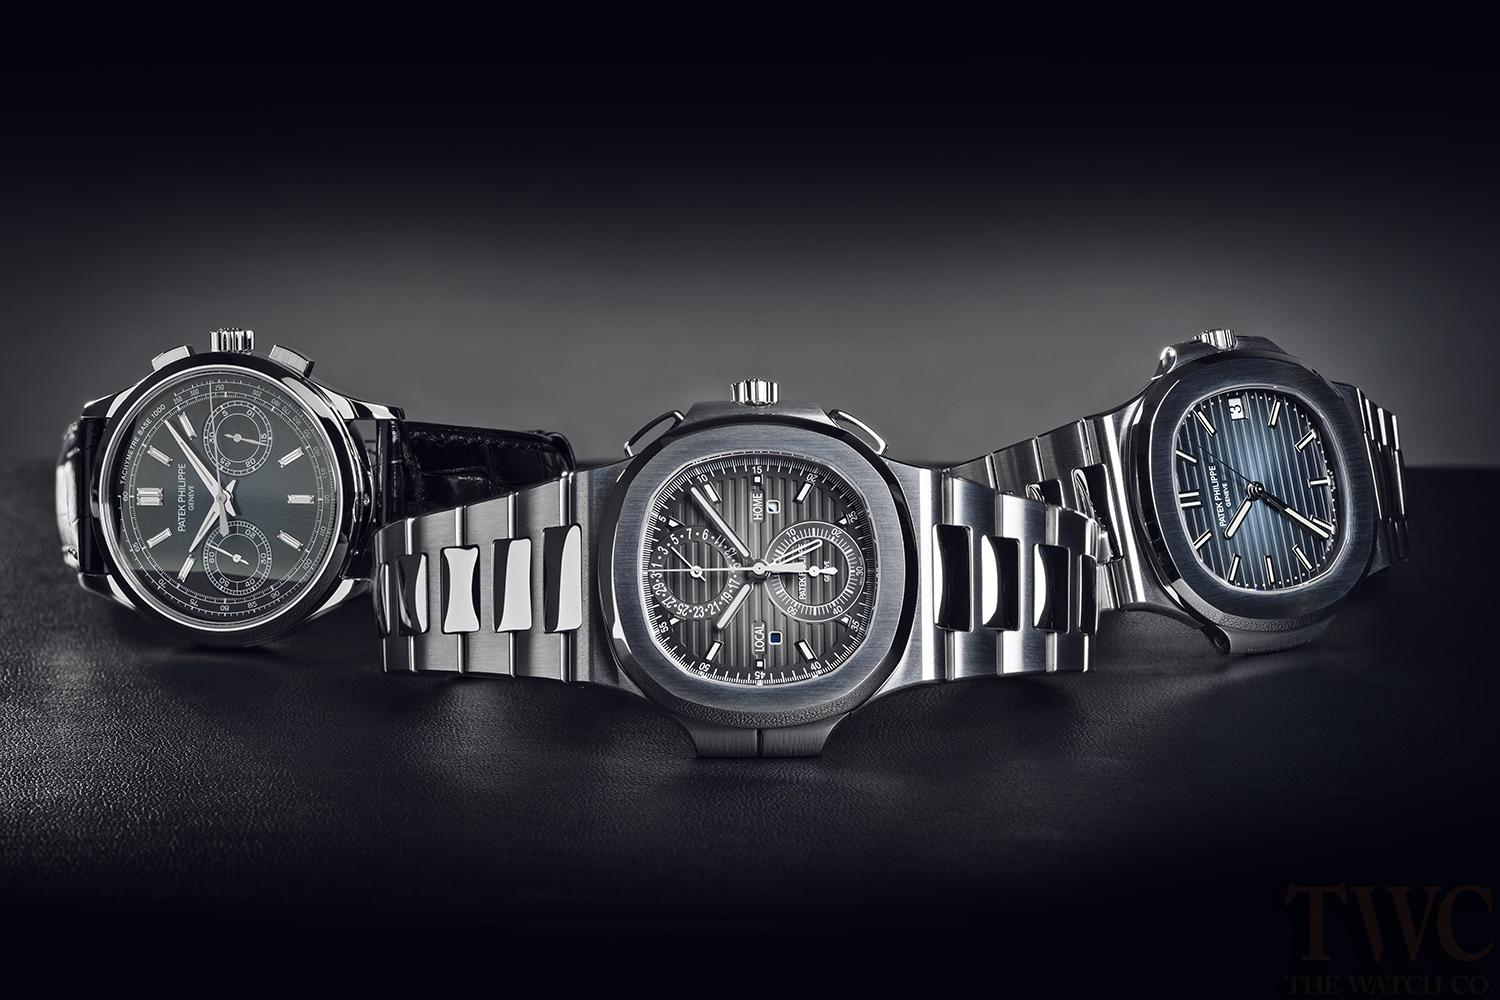 7 Patek Philippe Watches that Everyone Wants to Have